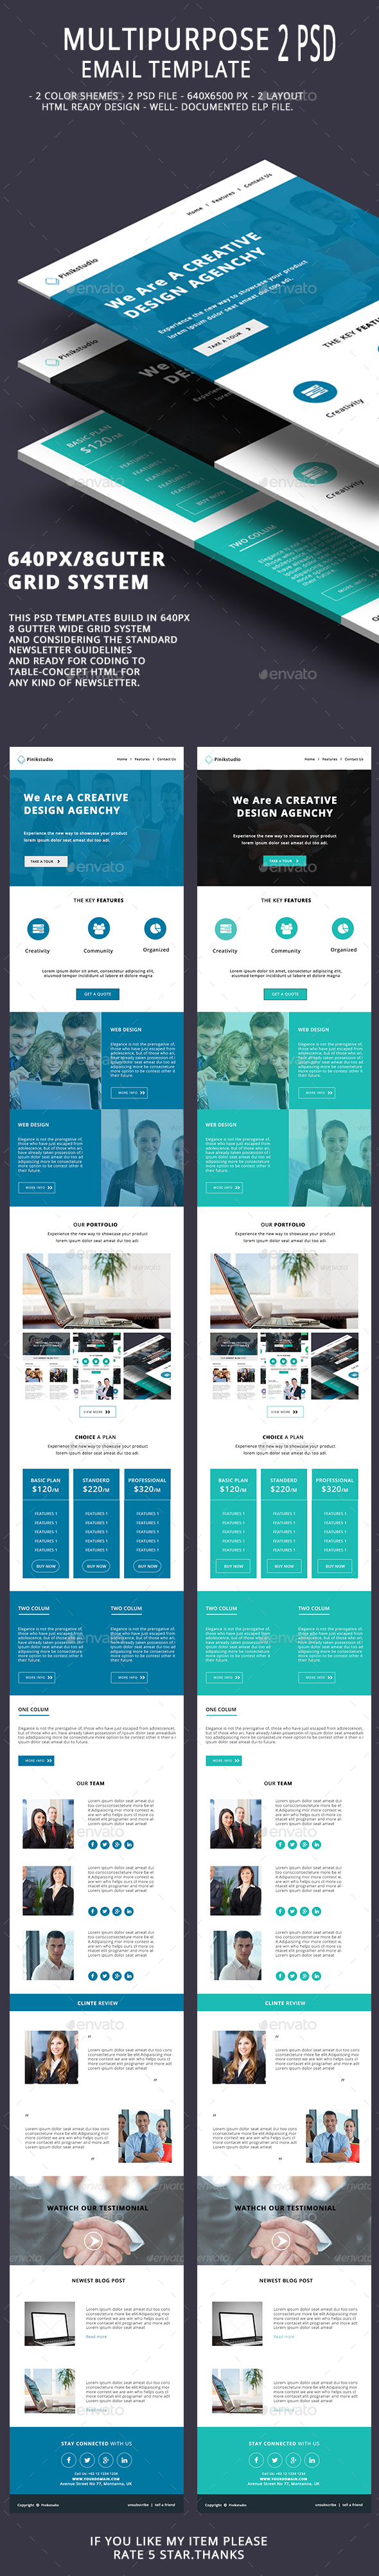 Multipurpose Email Template V10 - E-newsletters Web Elements